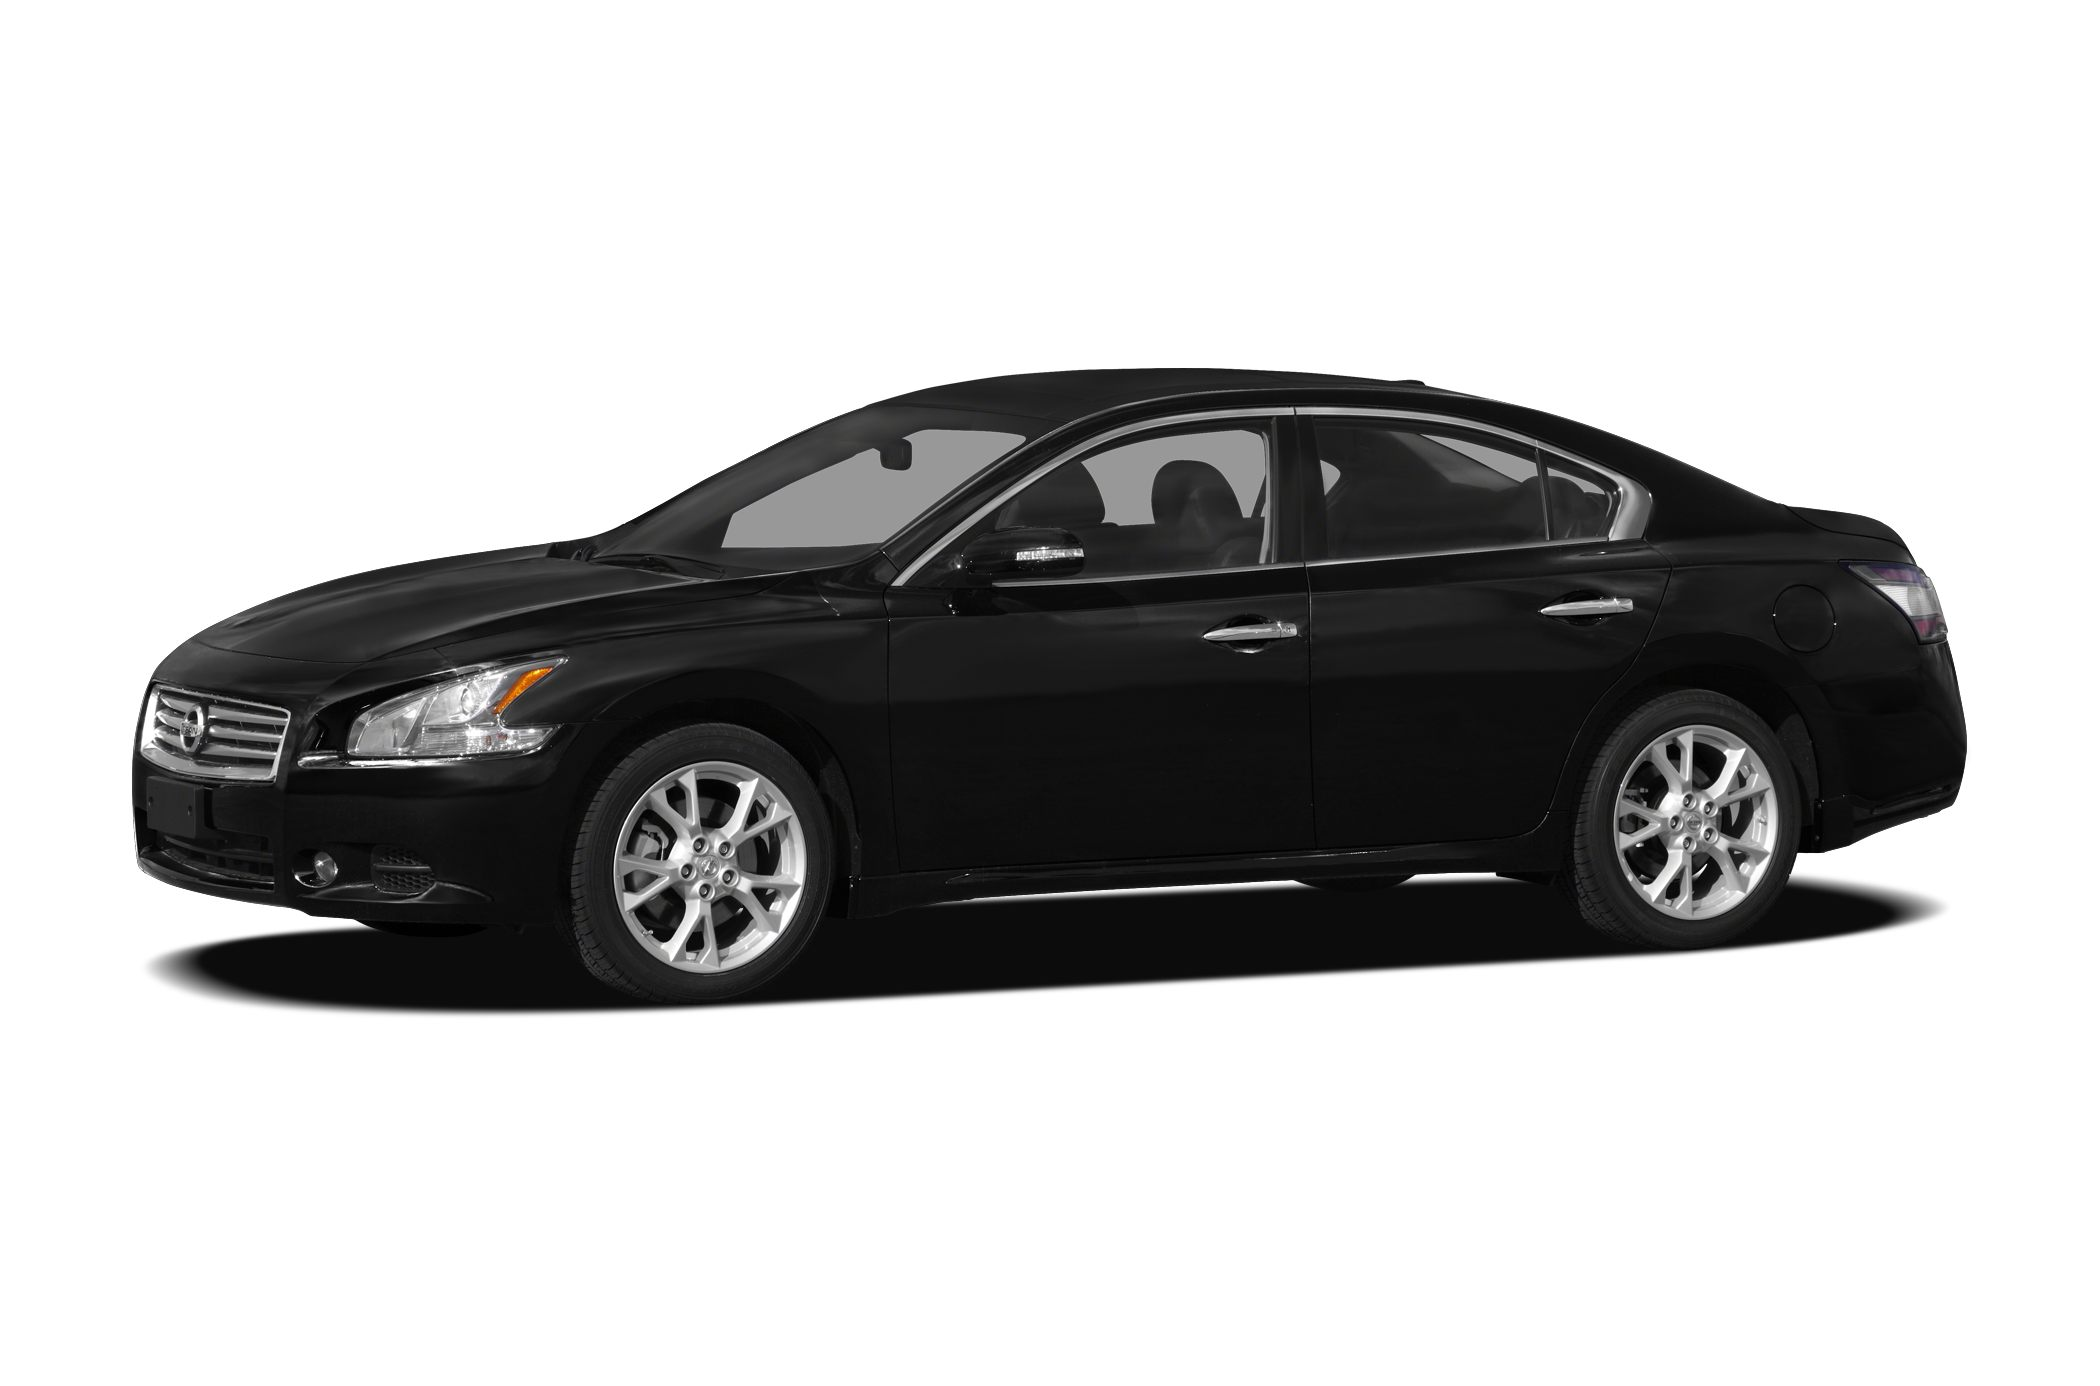 2012 Nissan Maxima SV Sedan for sale in Springfield for $21,605 with 26,254 miles